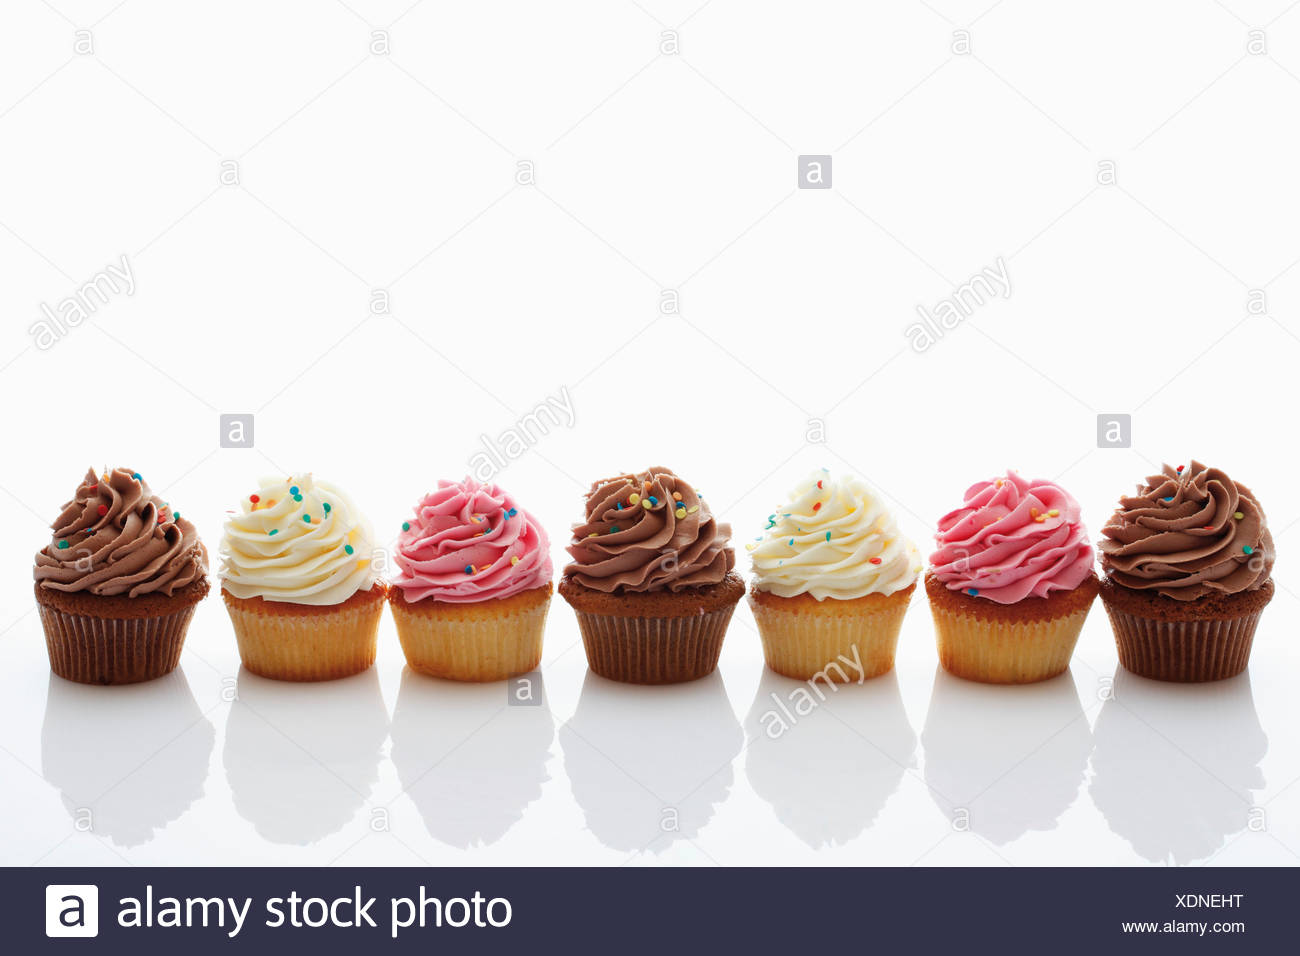 Close up of strawberry, vanilla and chocolate buttercream cupcakes against white background - Stock Image